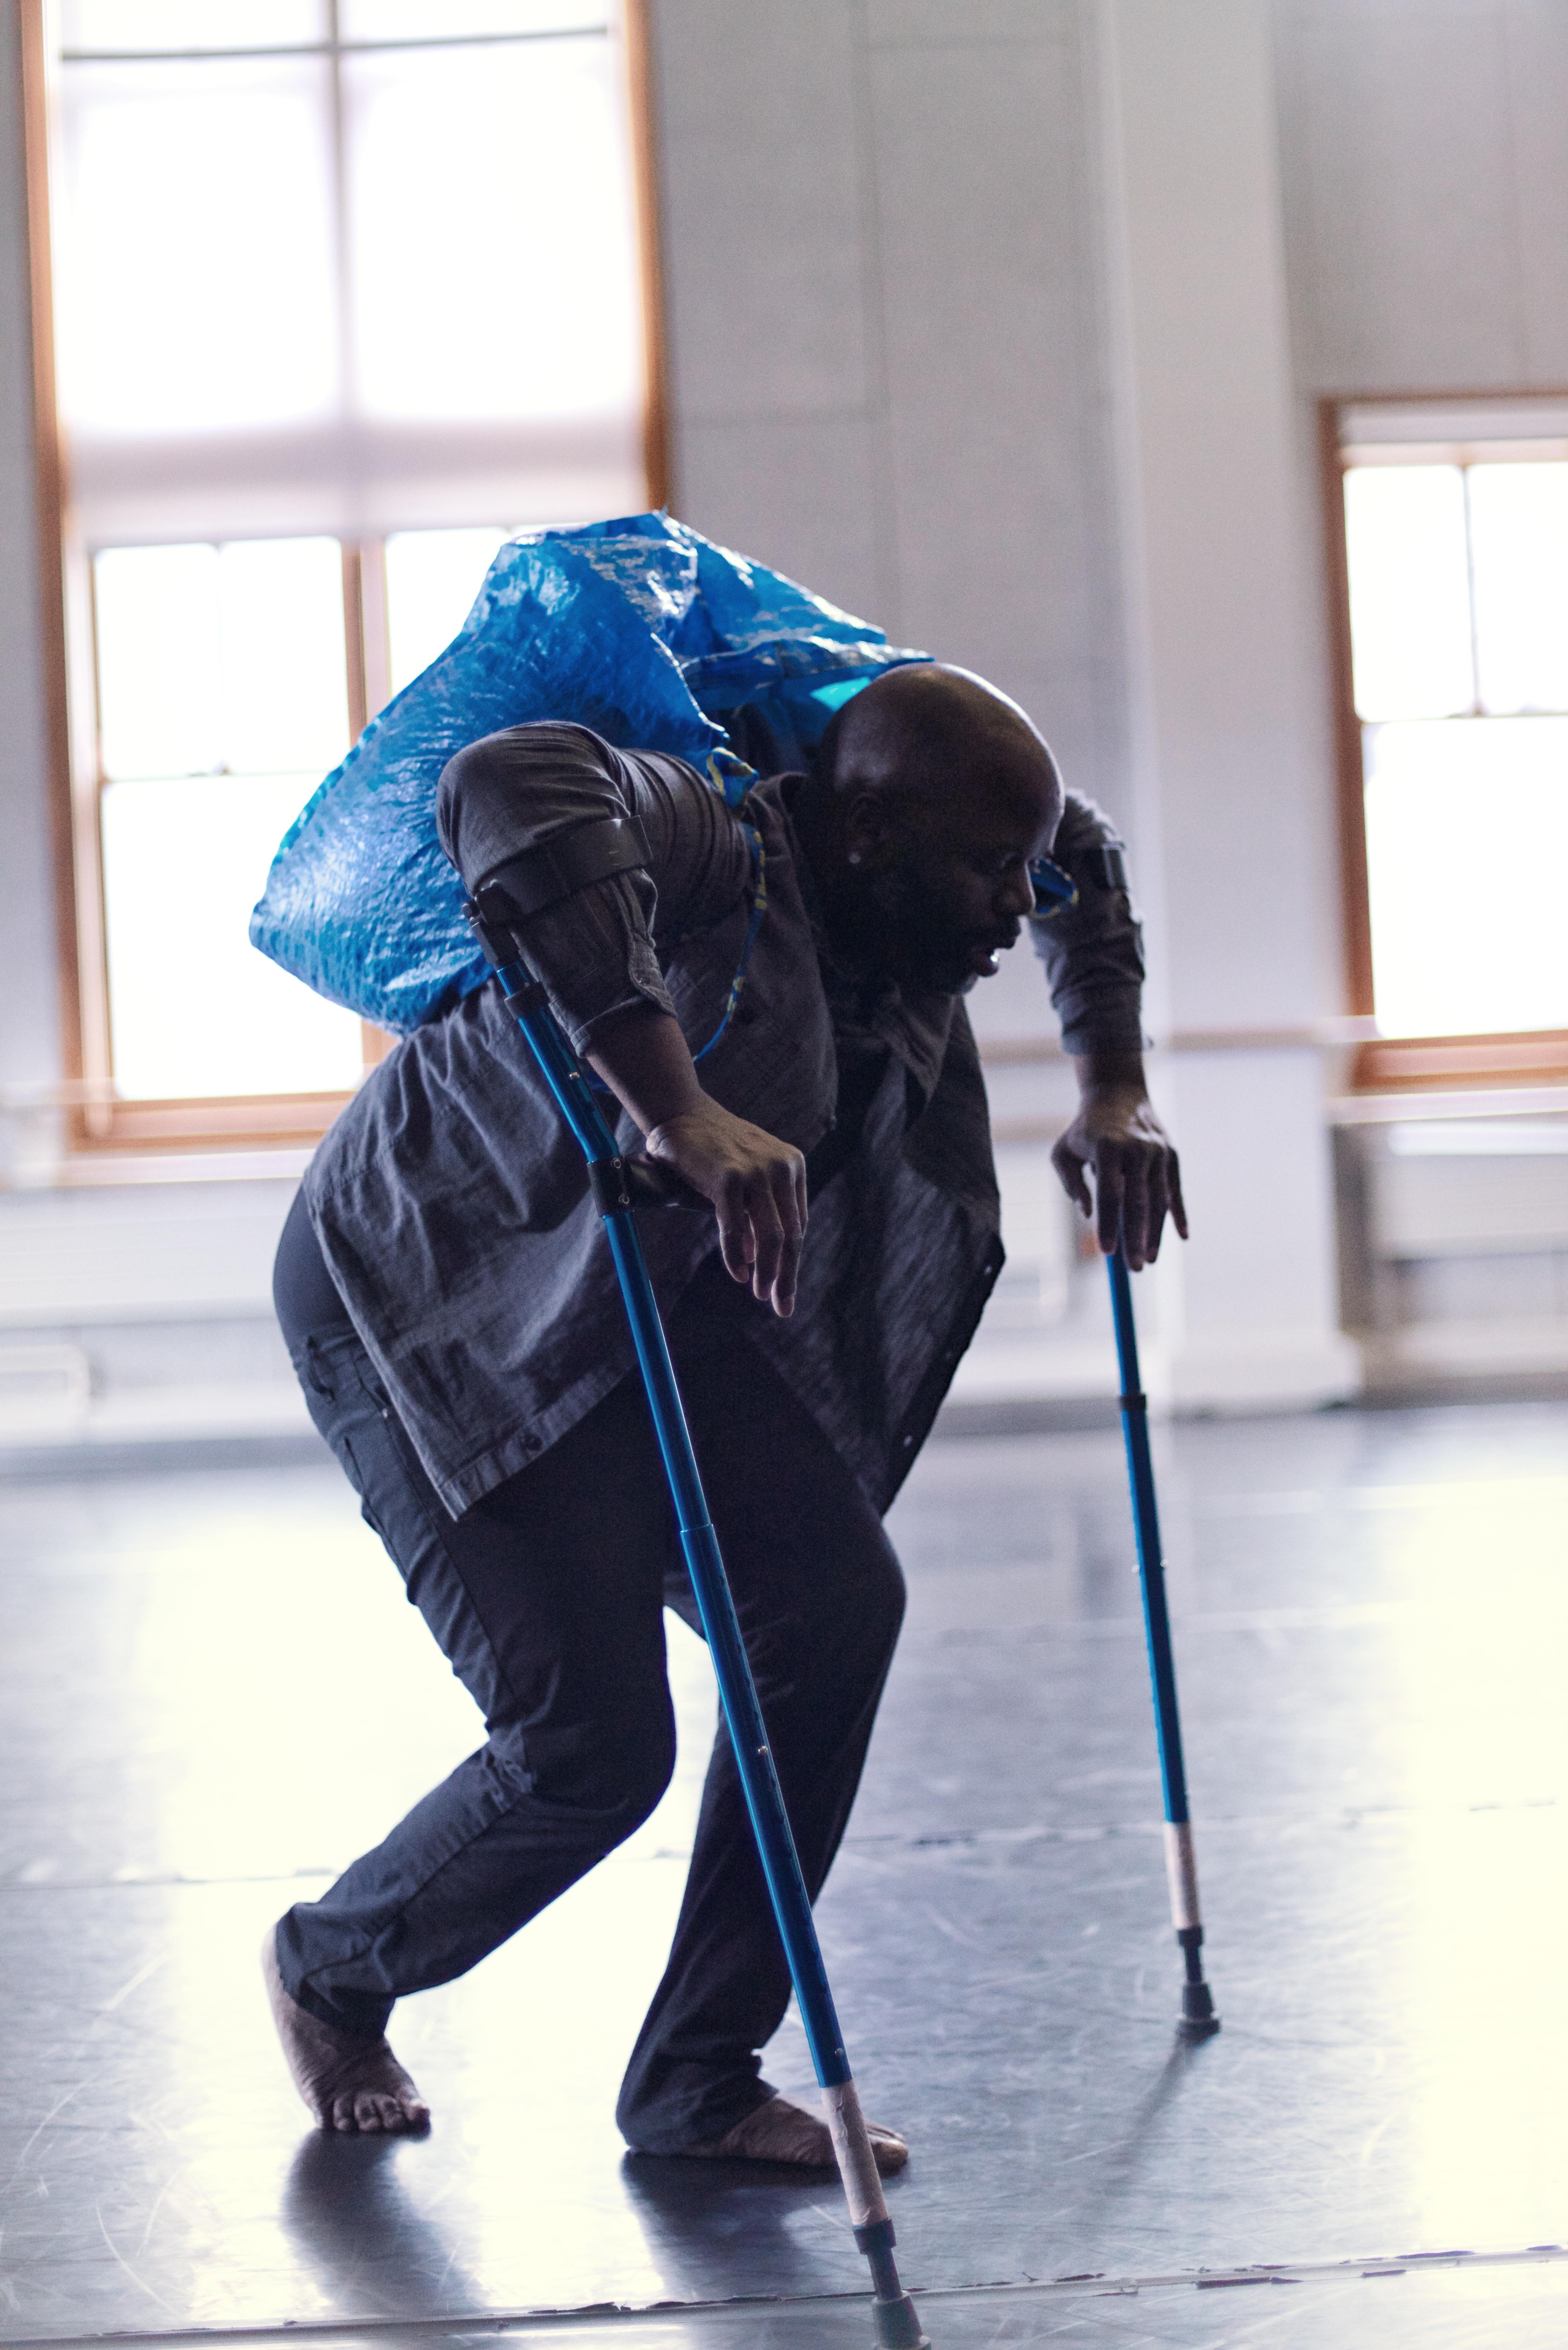 Man in studio dancing while using forearm crutches and wearing a large bag on his back